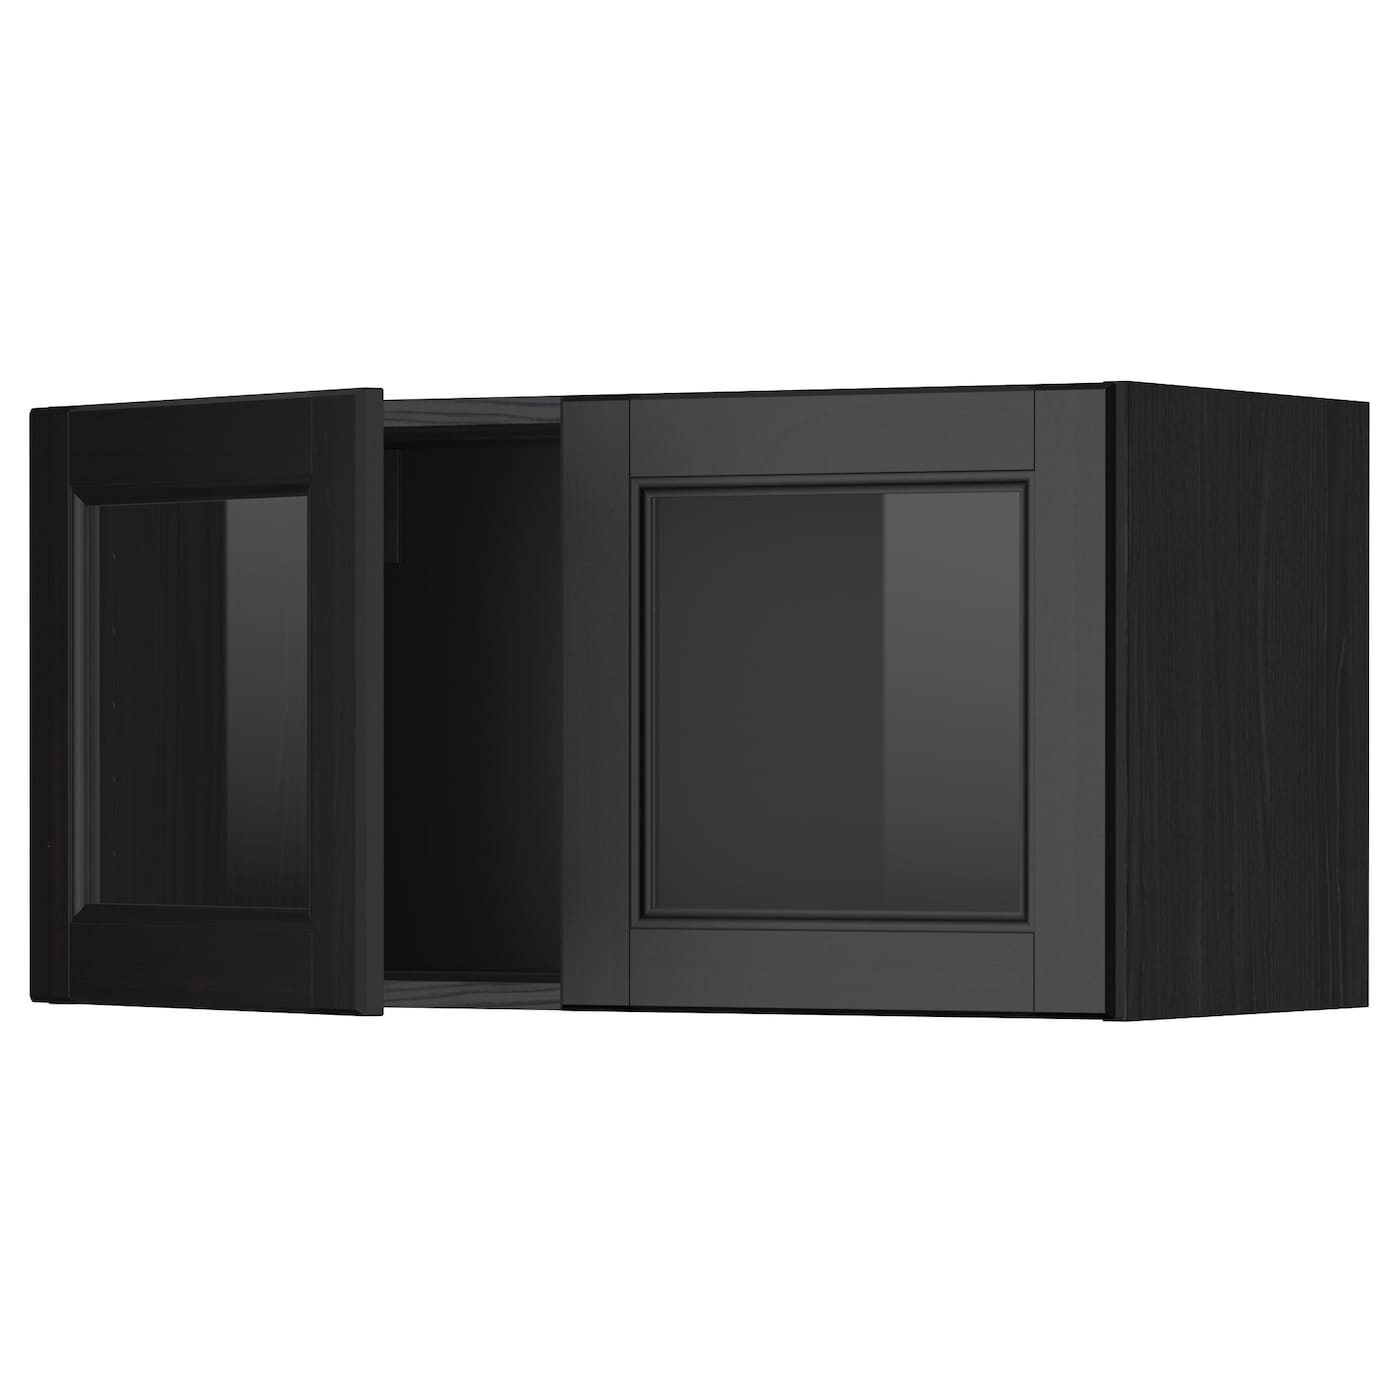 Metod wall cabinet with 2 glass doors black laxarby black for Glass kitchen wall units